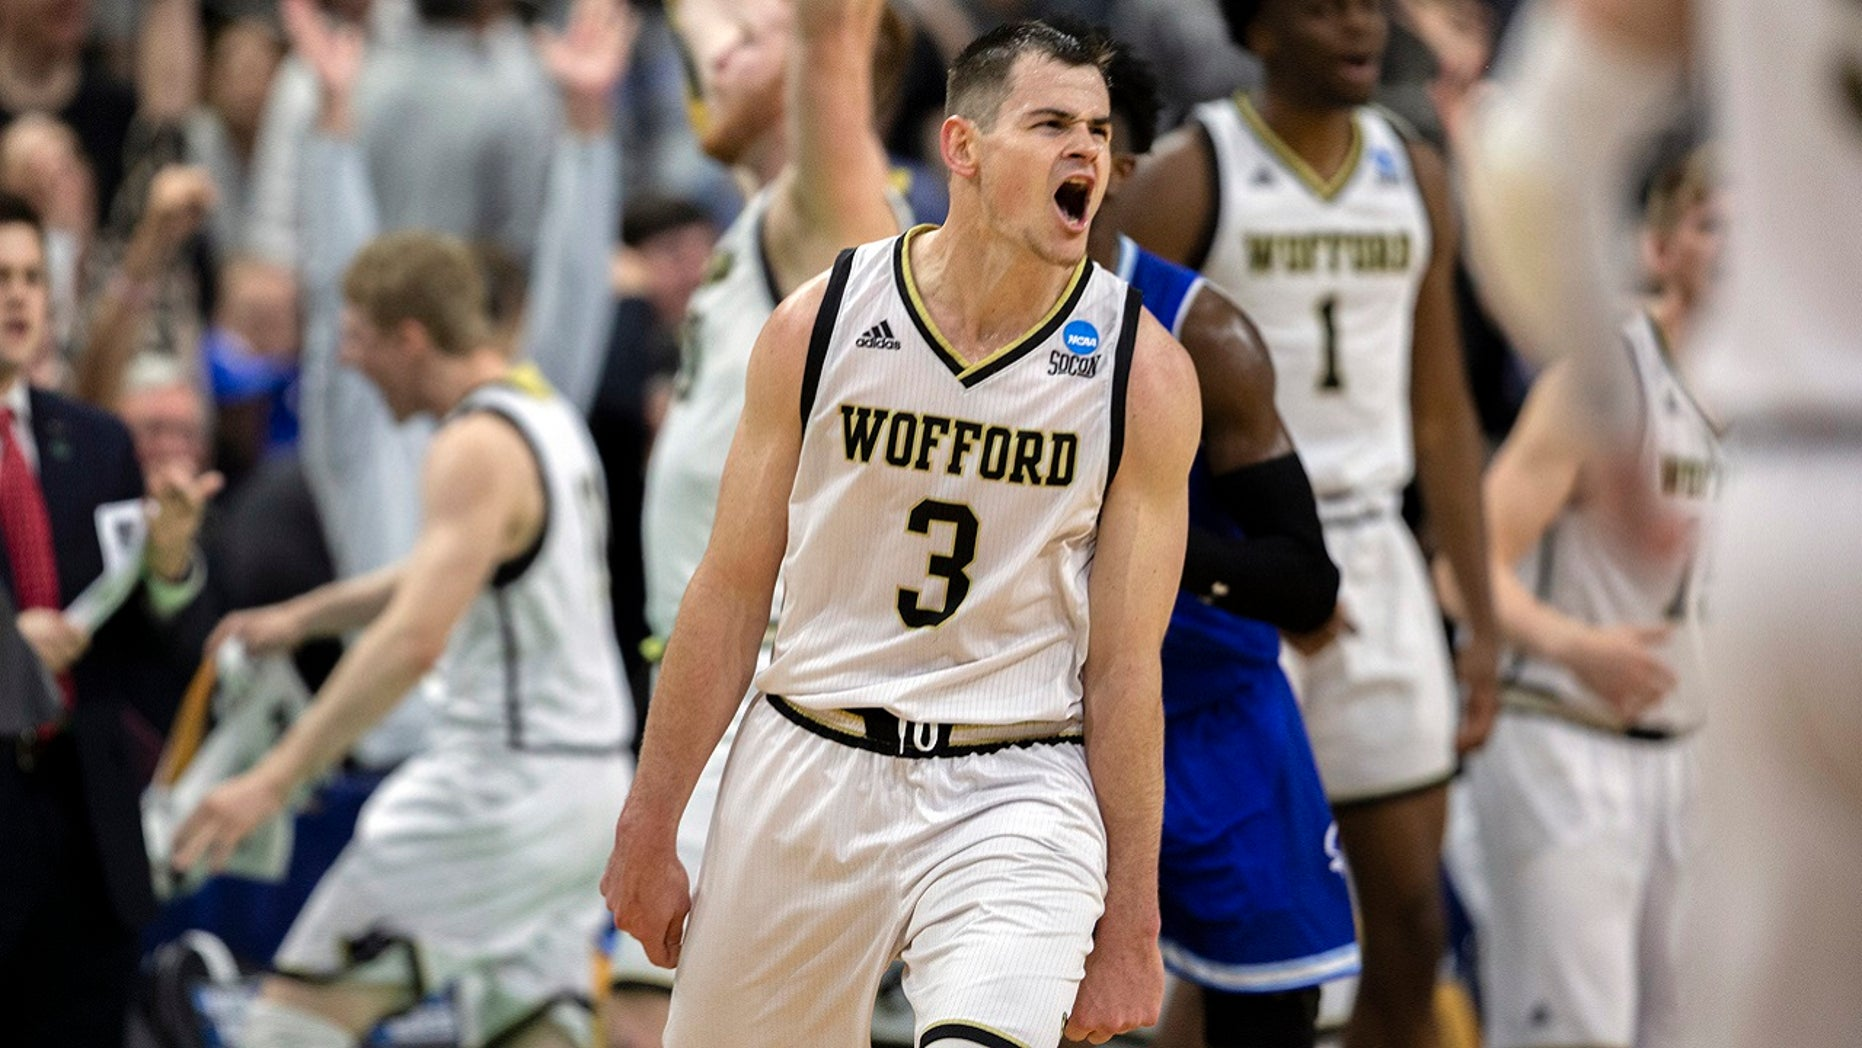 Wofford ensure Fletcher Magee (3) celebrates with teammates after attack a 3-point basket during a final moments of a second half opposite Seton Hall in a first-round diversion in a NCAA men's college basketball contest in Jacksonville, Fla. Thursday, Mar 21, 2019.